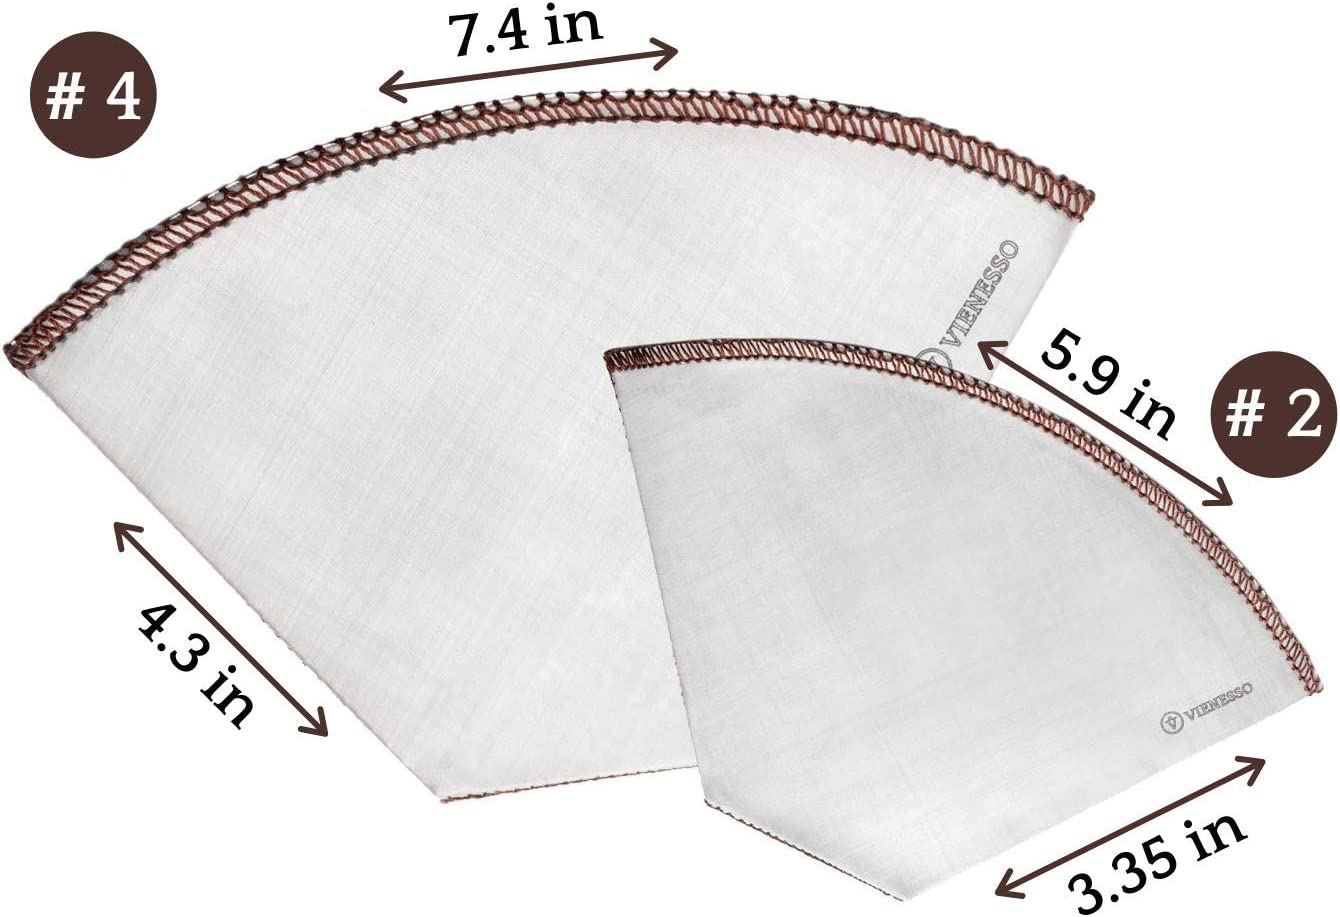 Sustainable Paperless Cone Filters for Coffee Machines and Makers 2 Stainless-Steel Mesh Filters Bundle VIENESSO Reusable Coffee Filters Sizes #2 and #4 Great for Drip-Feed and Pour Over